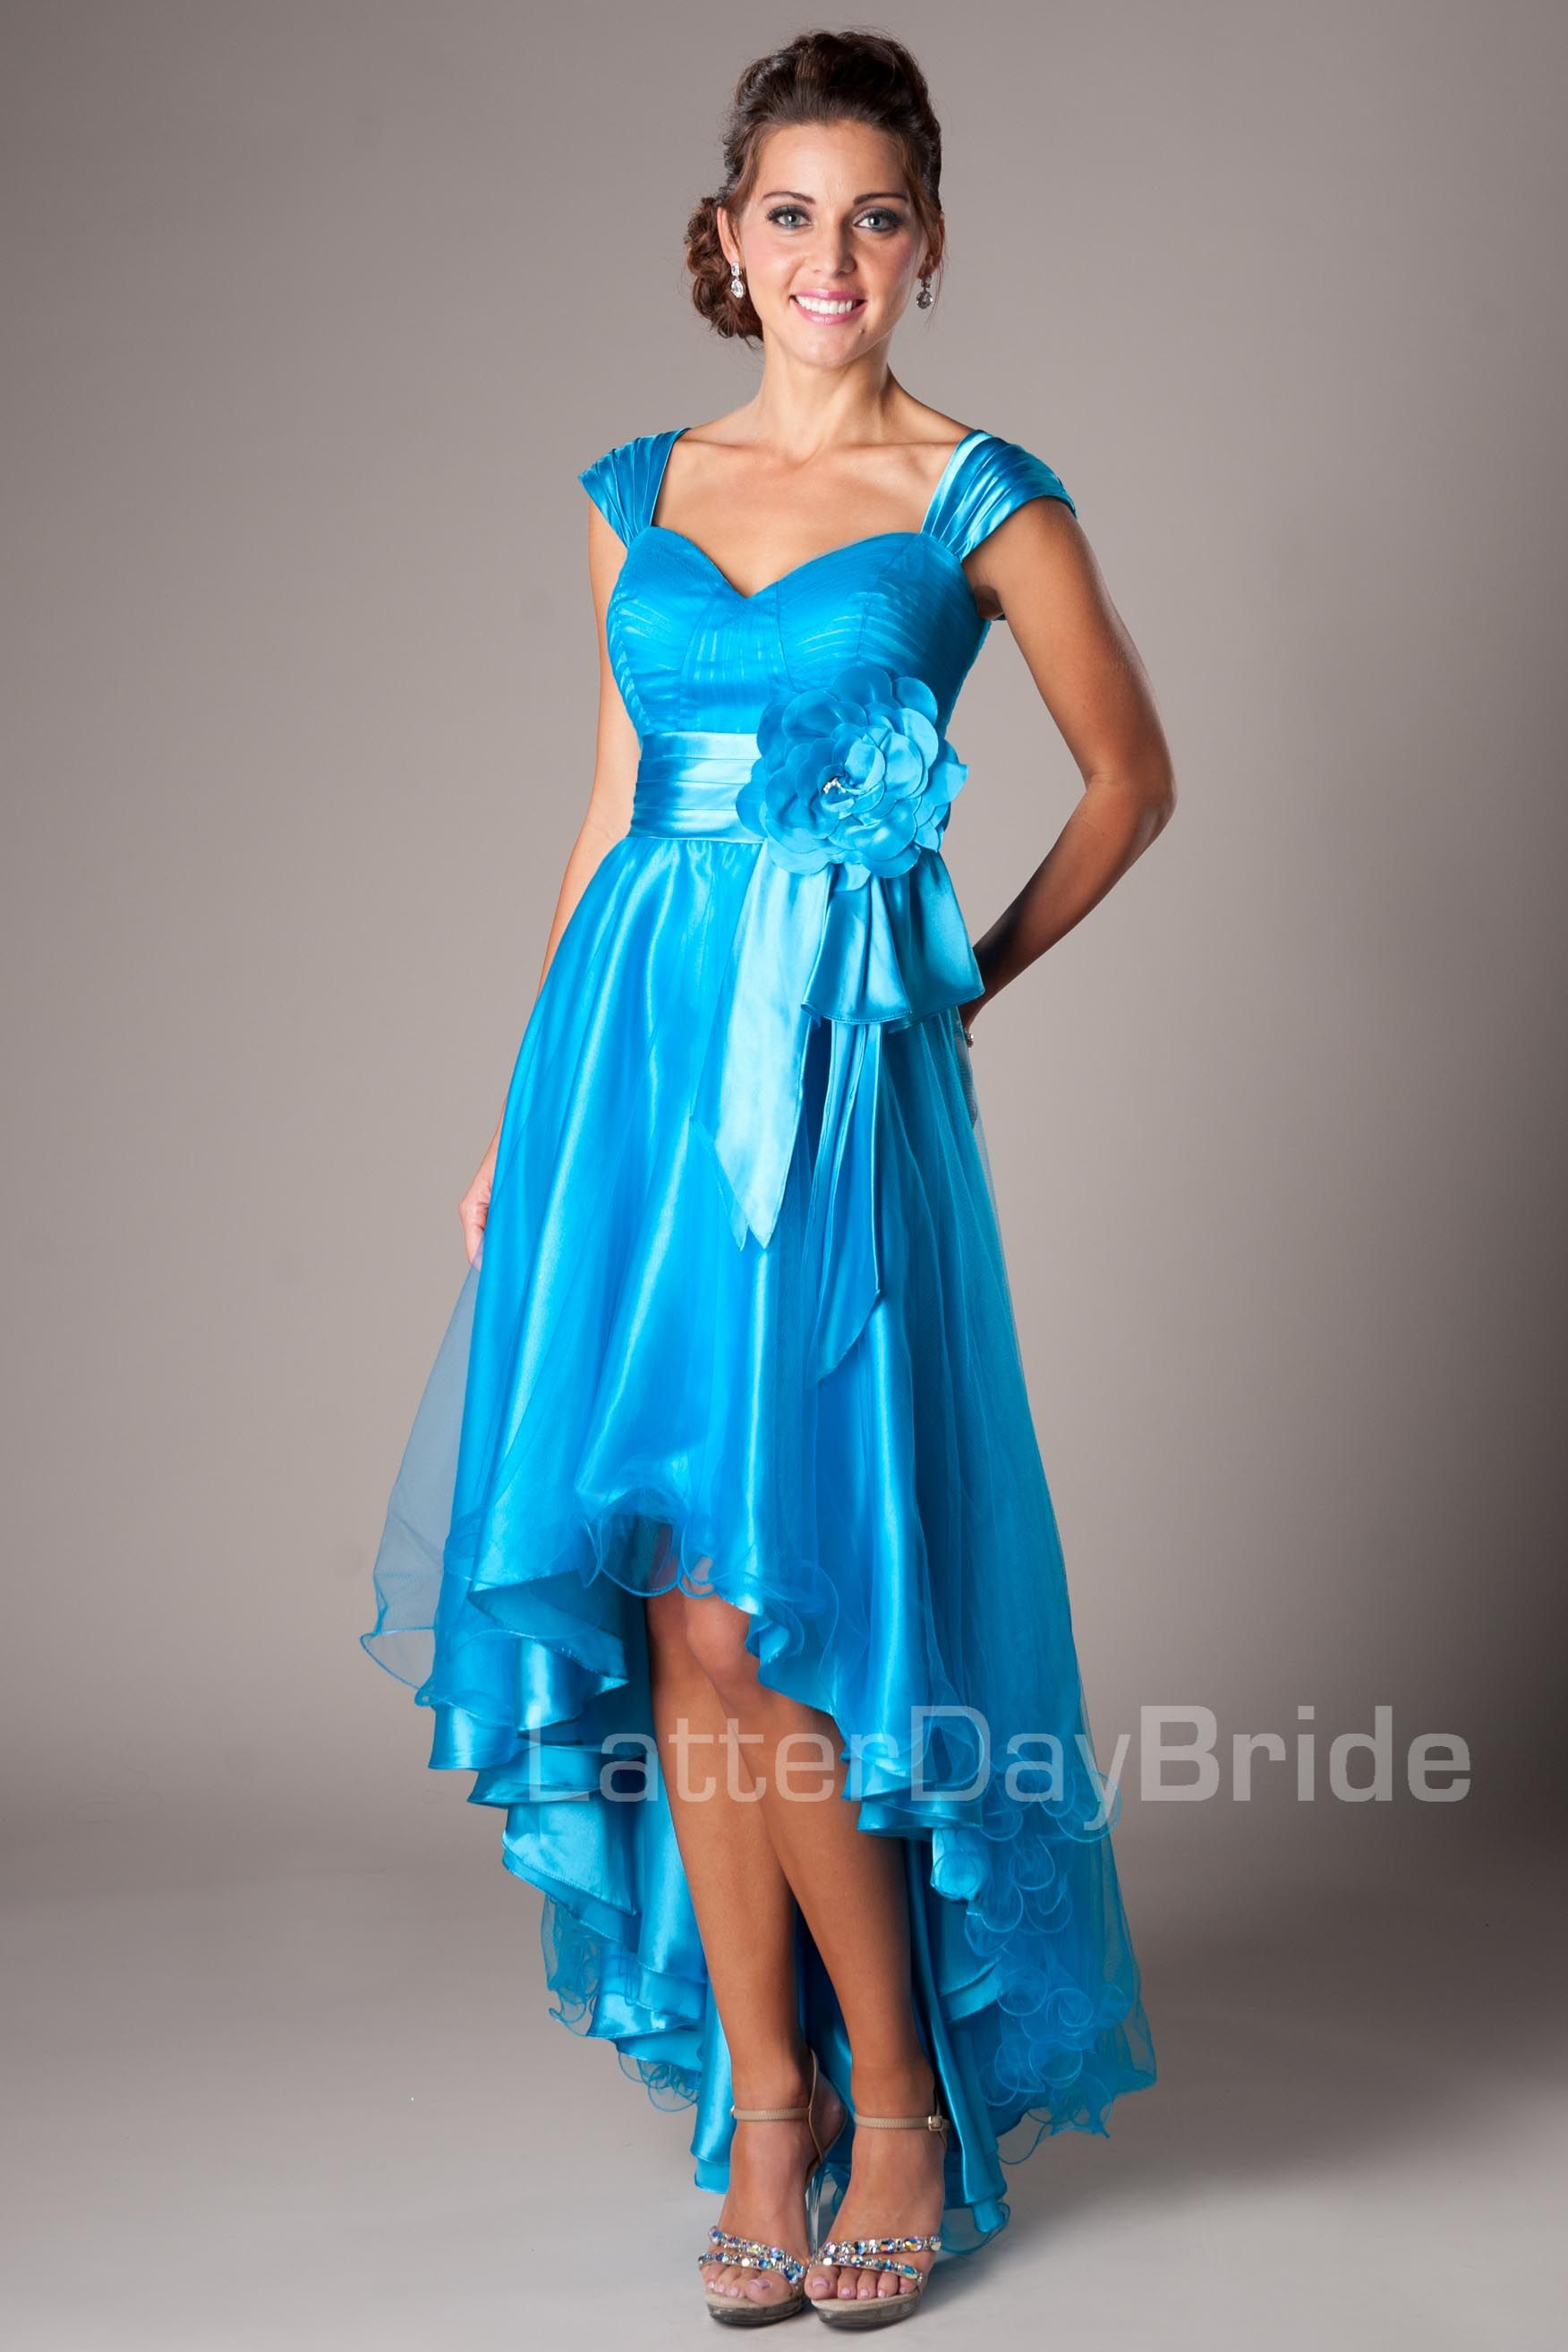 Modest Prom Dresses : Summer SALE $99 (originally $275) -- check ...